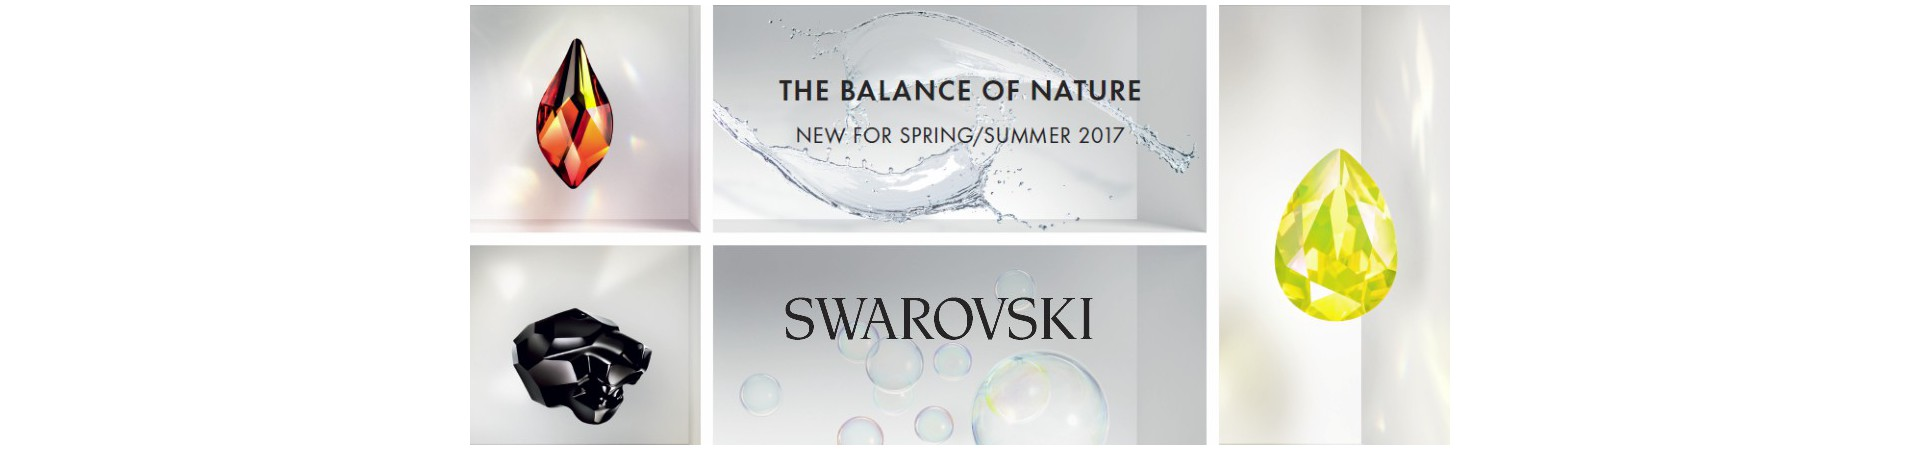 The Balance of Nature Spring/Summer 2017